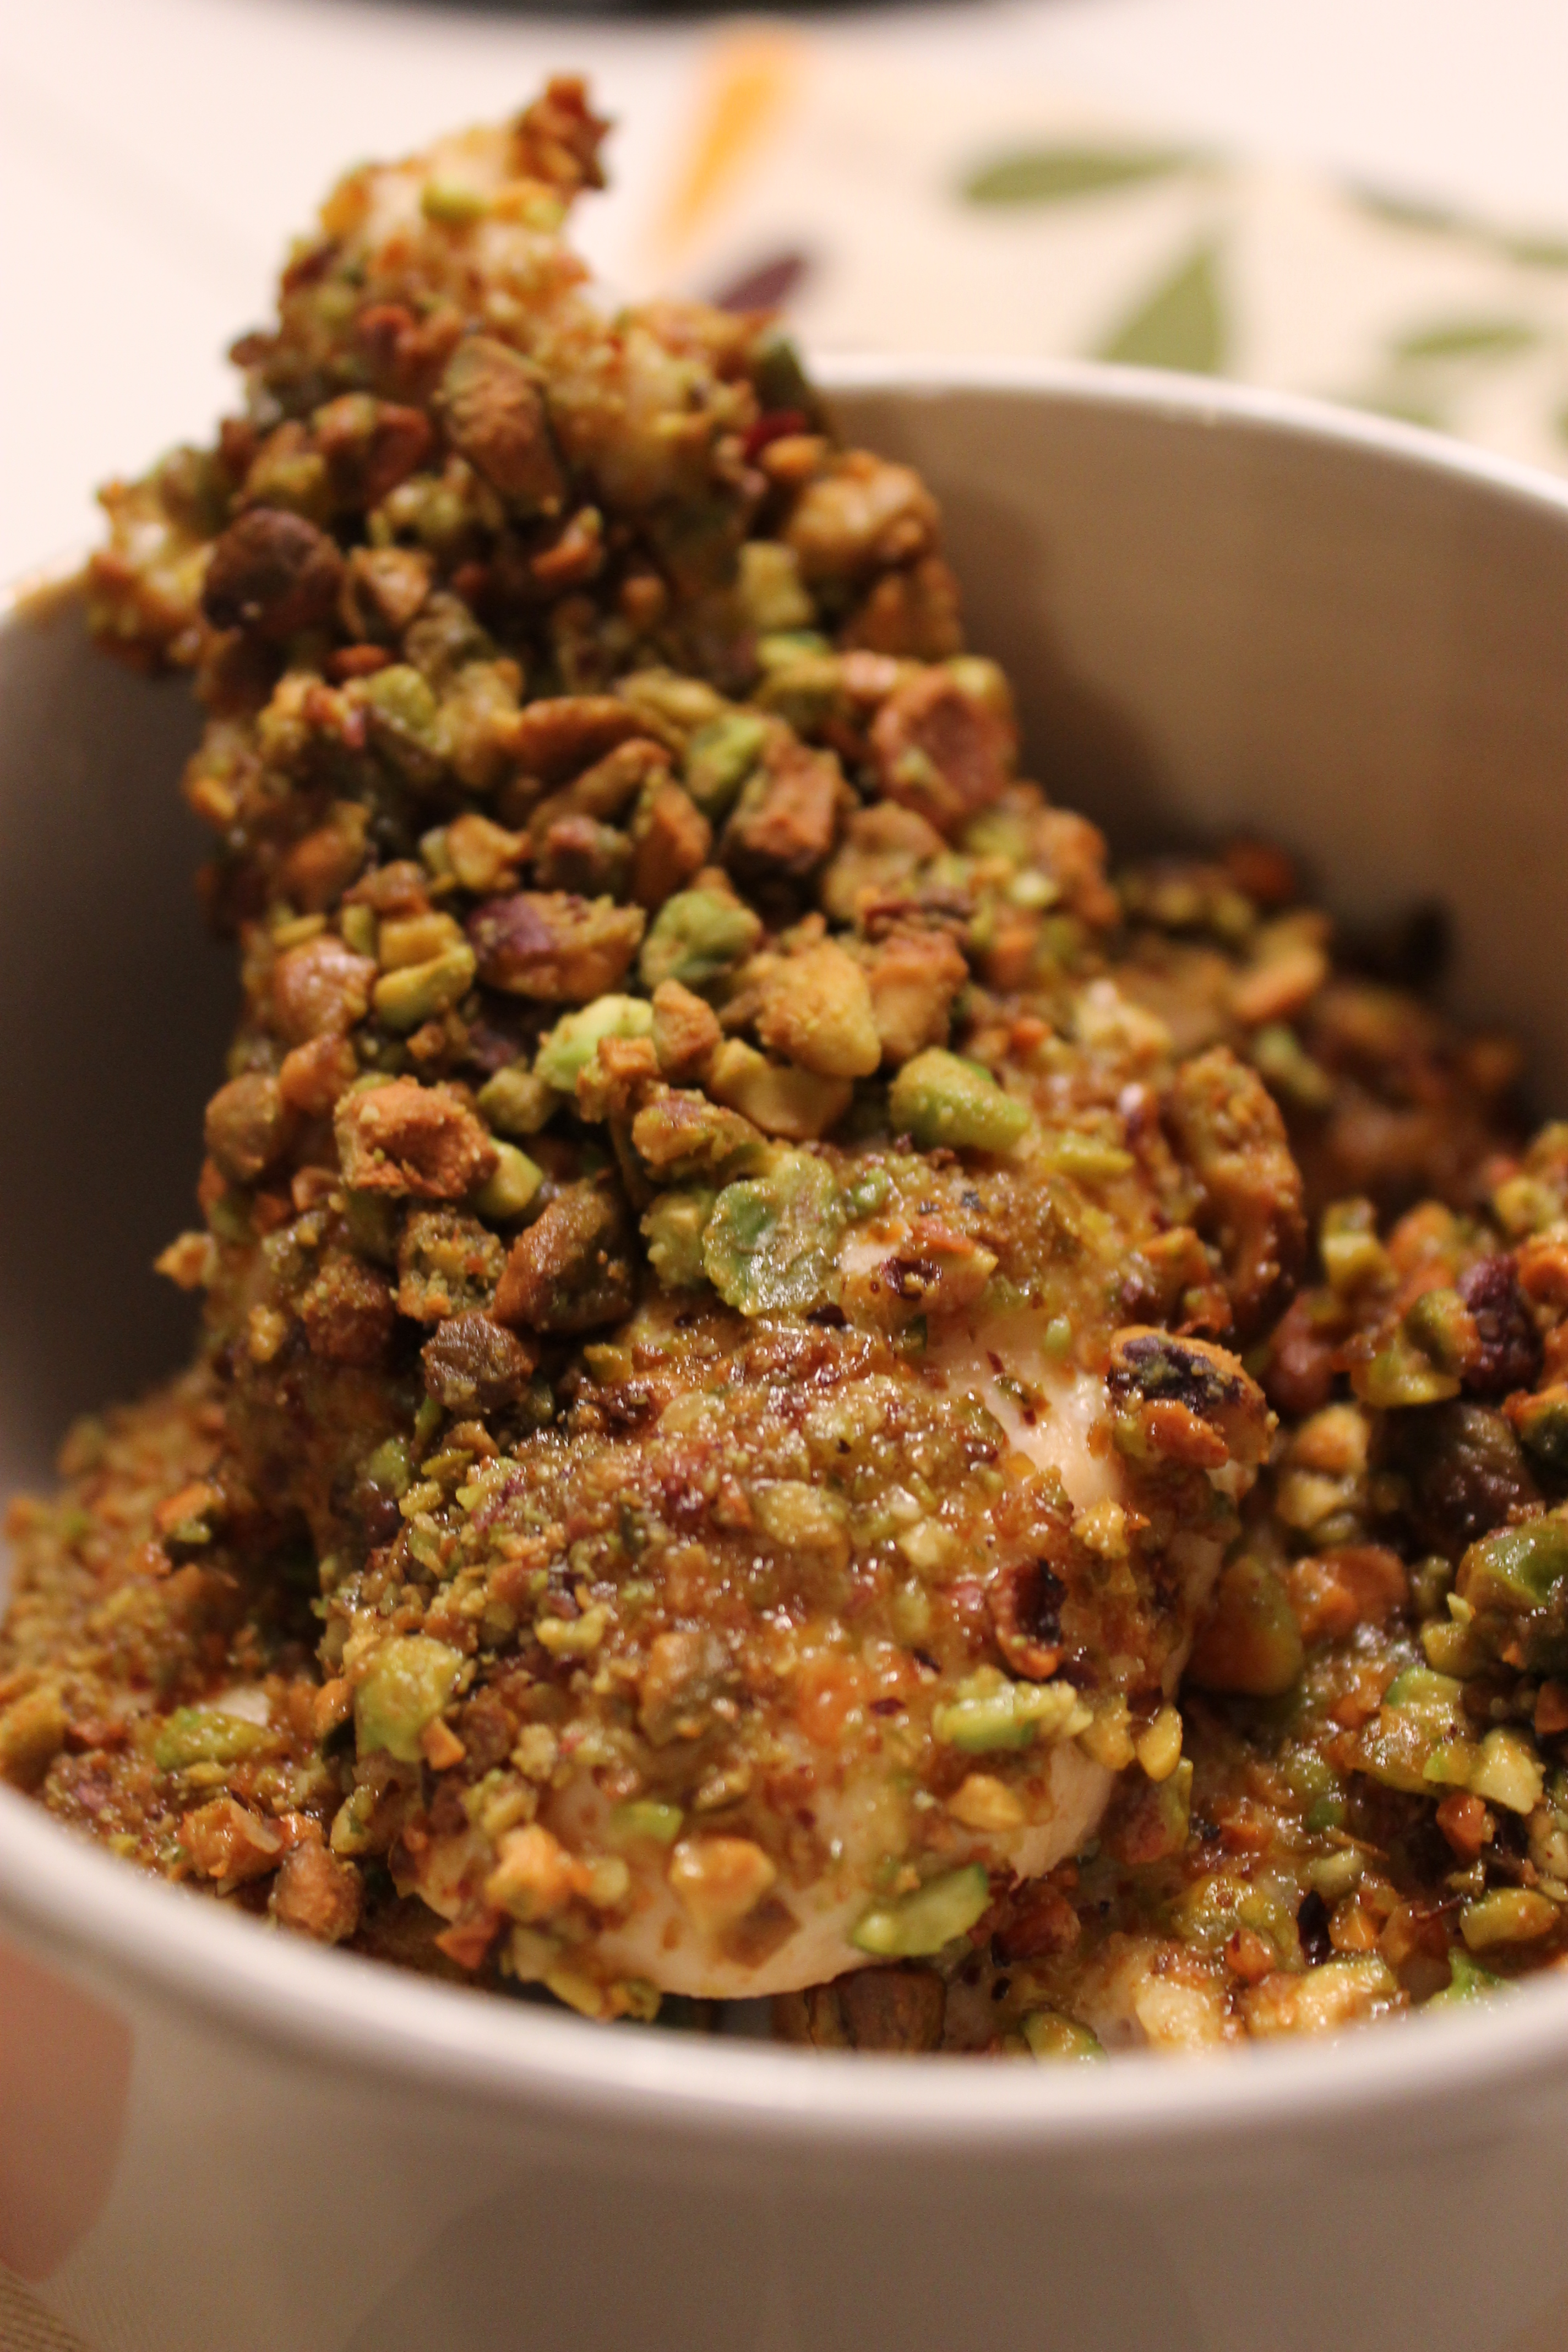 Pistachio Chicken2